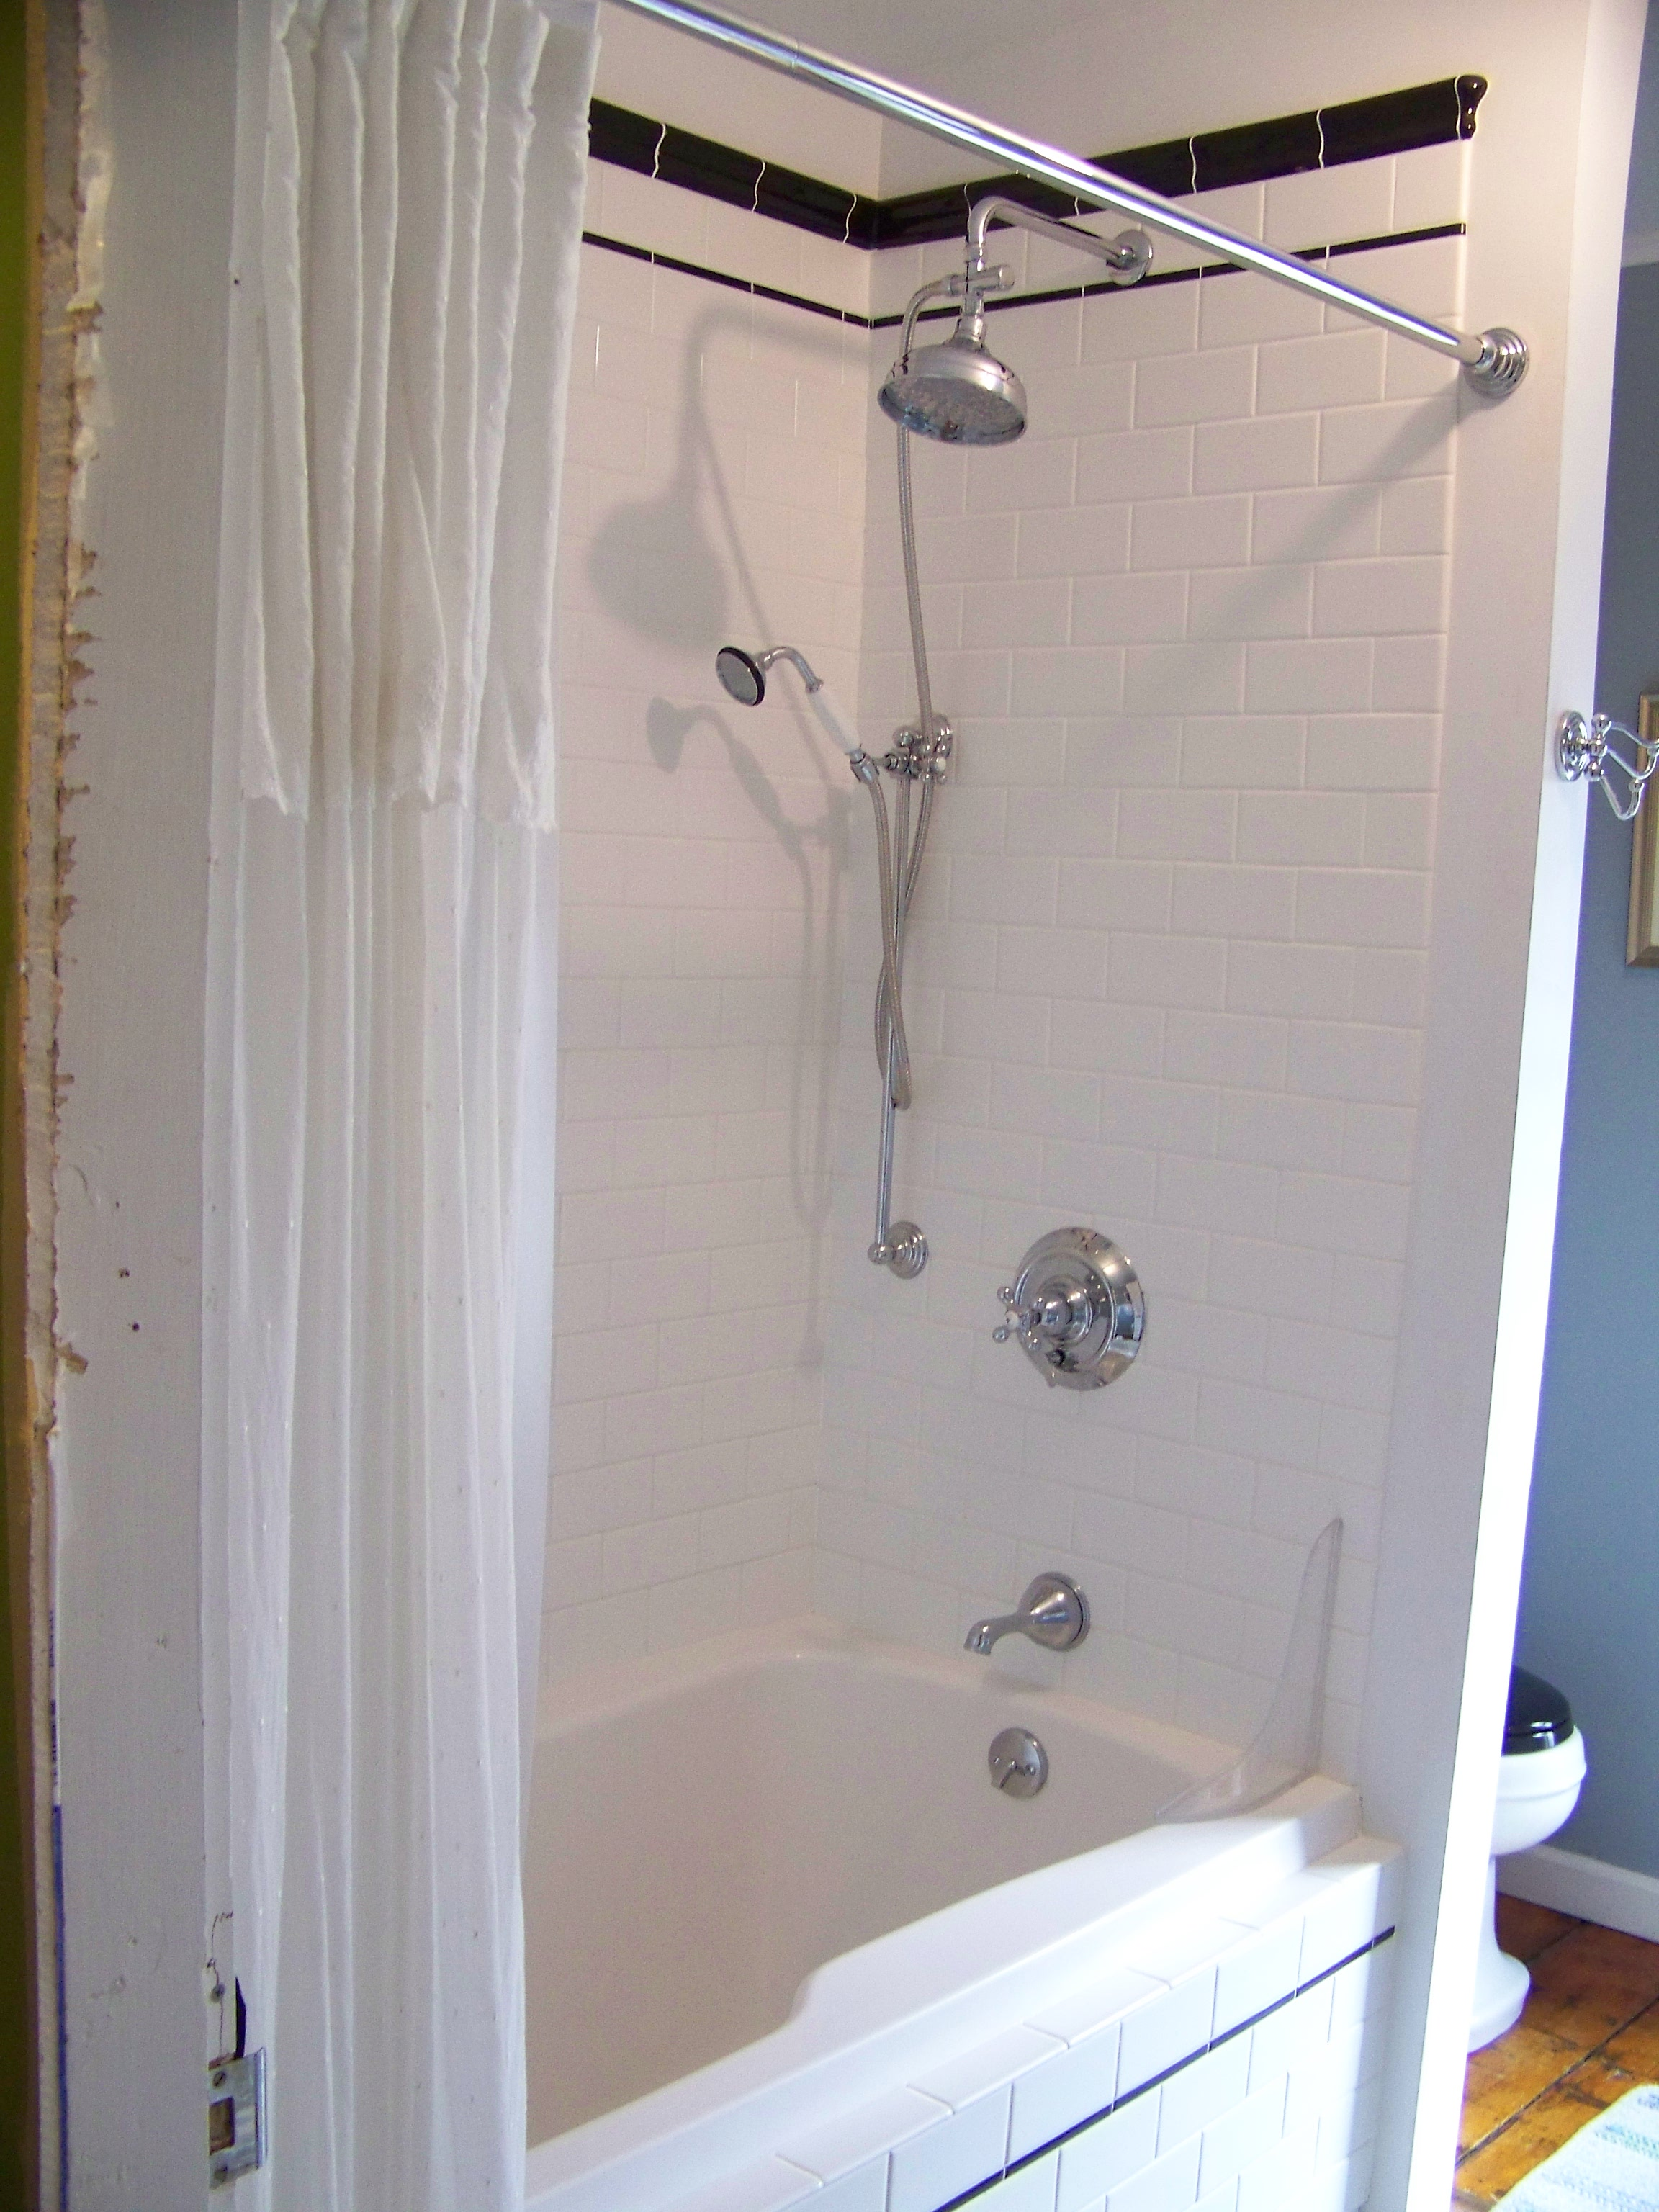 images of small country living rooms how to decorate modern room subway tiled shower with chrome fixtures and handheld ...